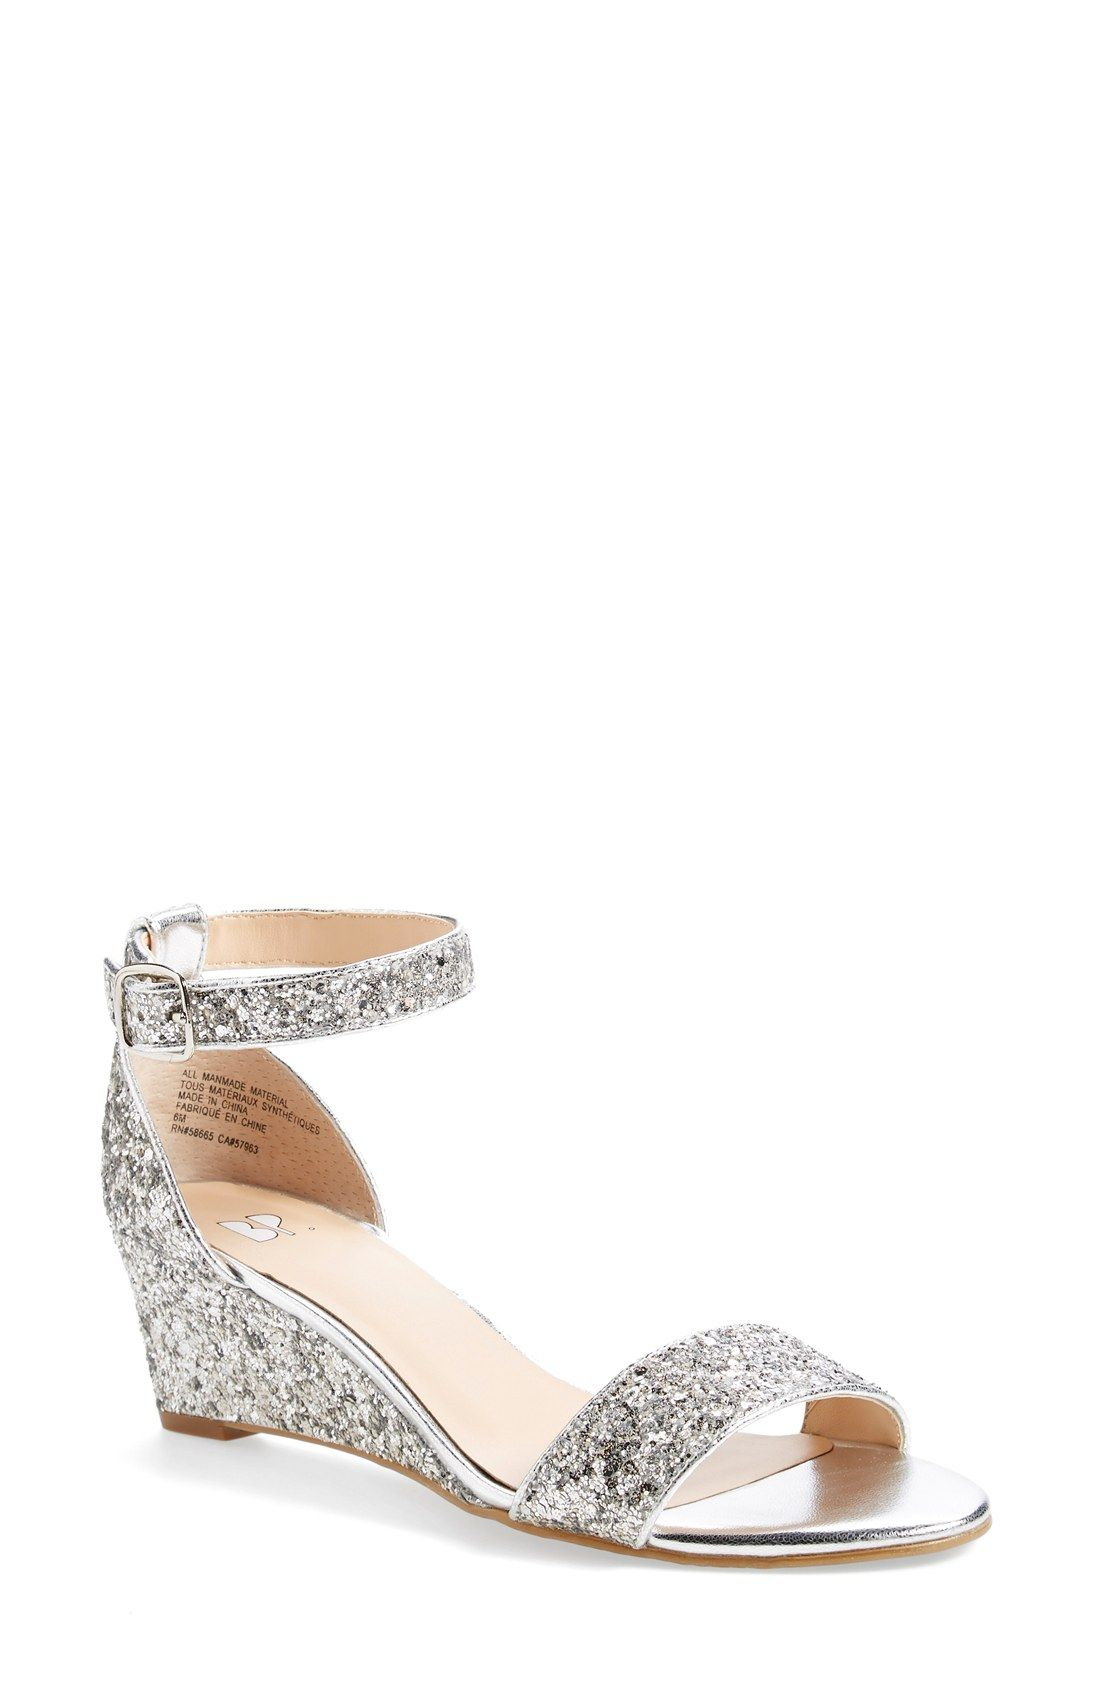 bd32891a132 These sparkly sandals are sure to add a little razzle-dazzle to any ...